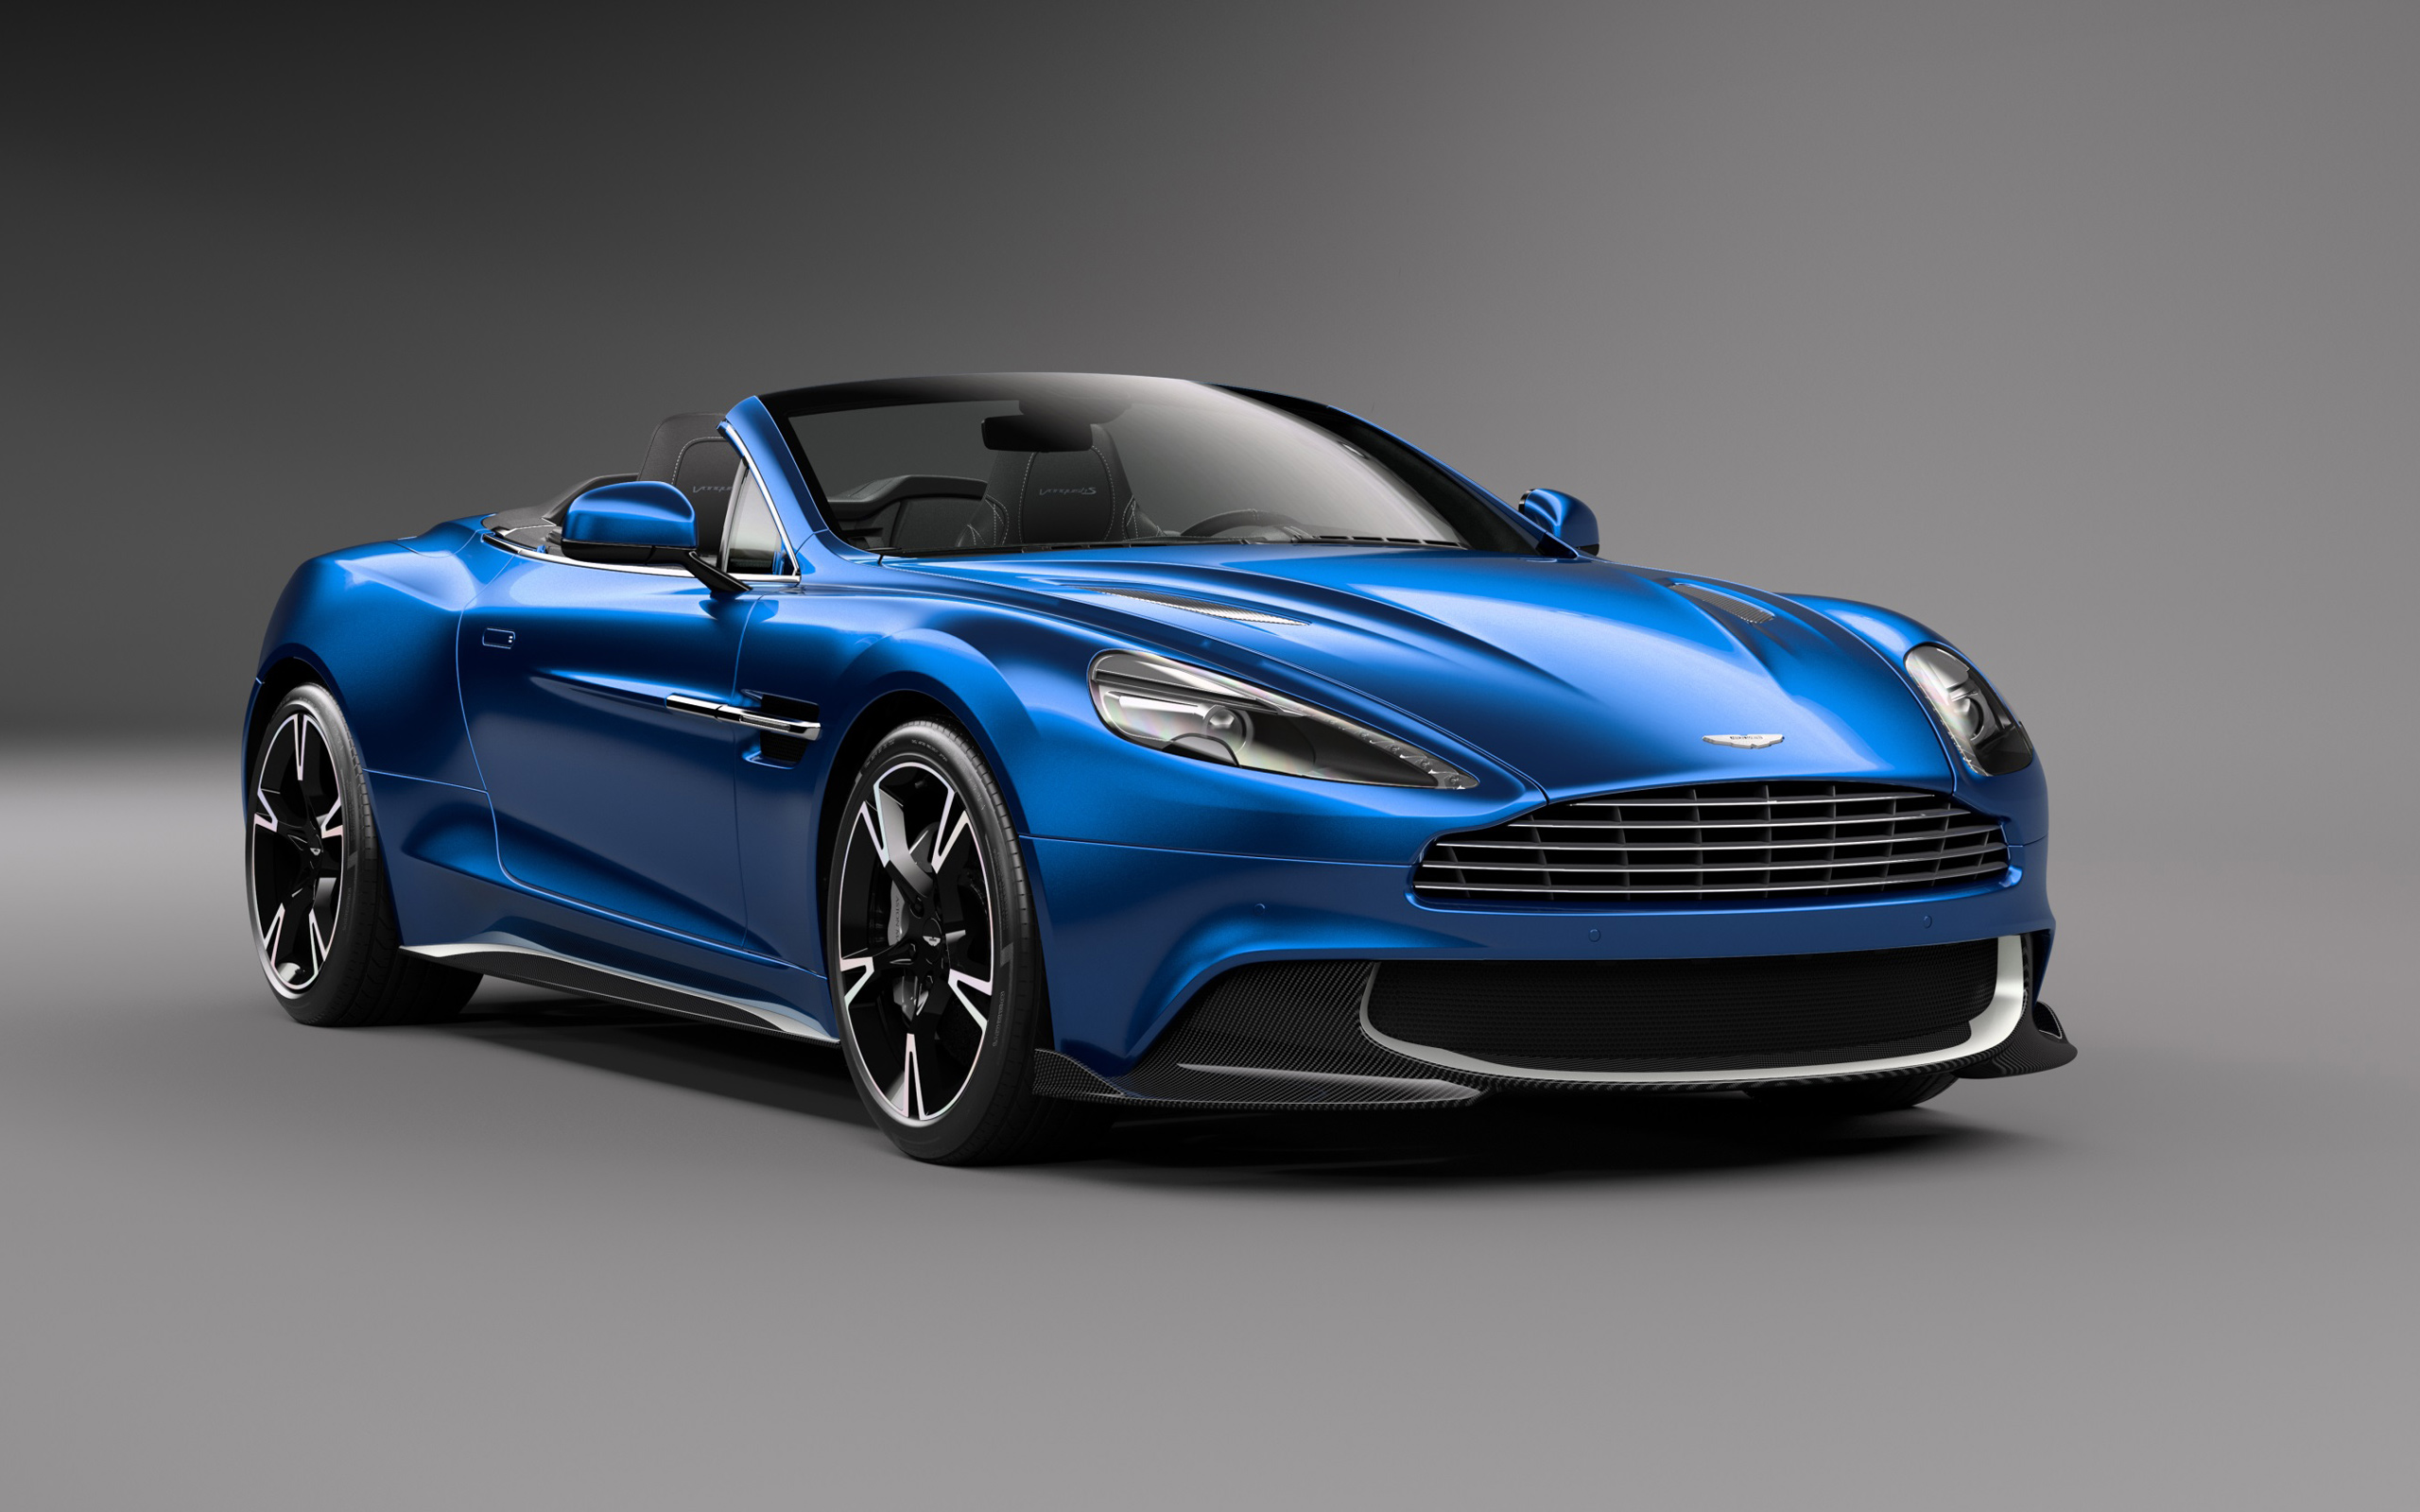 Aston Martin Vanquish S Volante Super GT 2018   HD Wallpapers 2560x1600